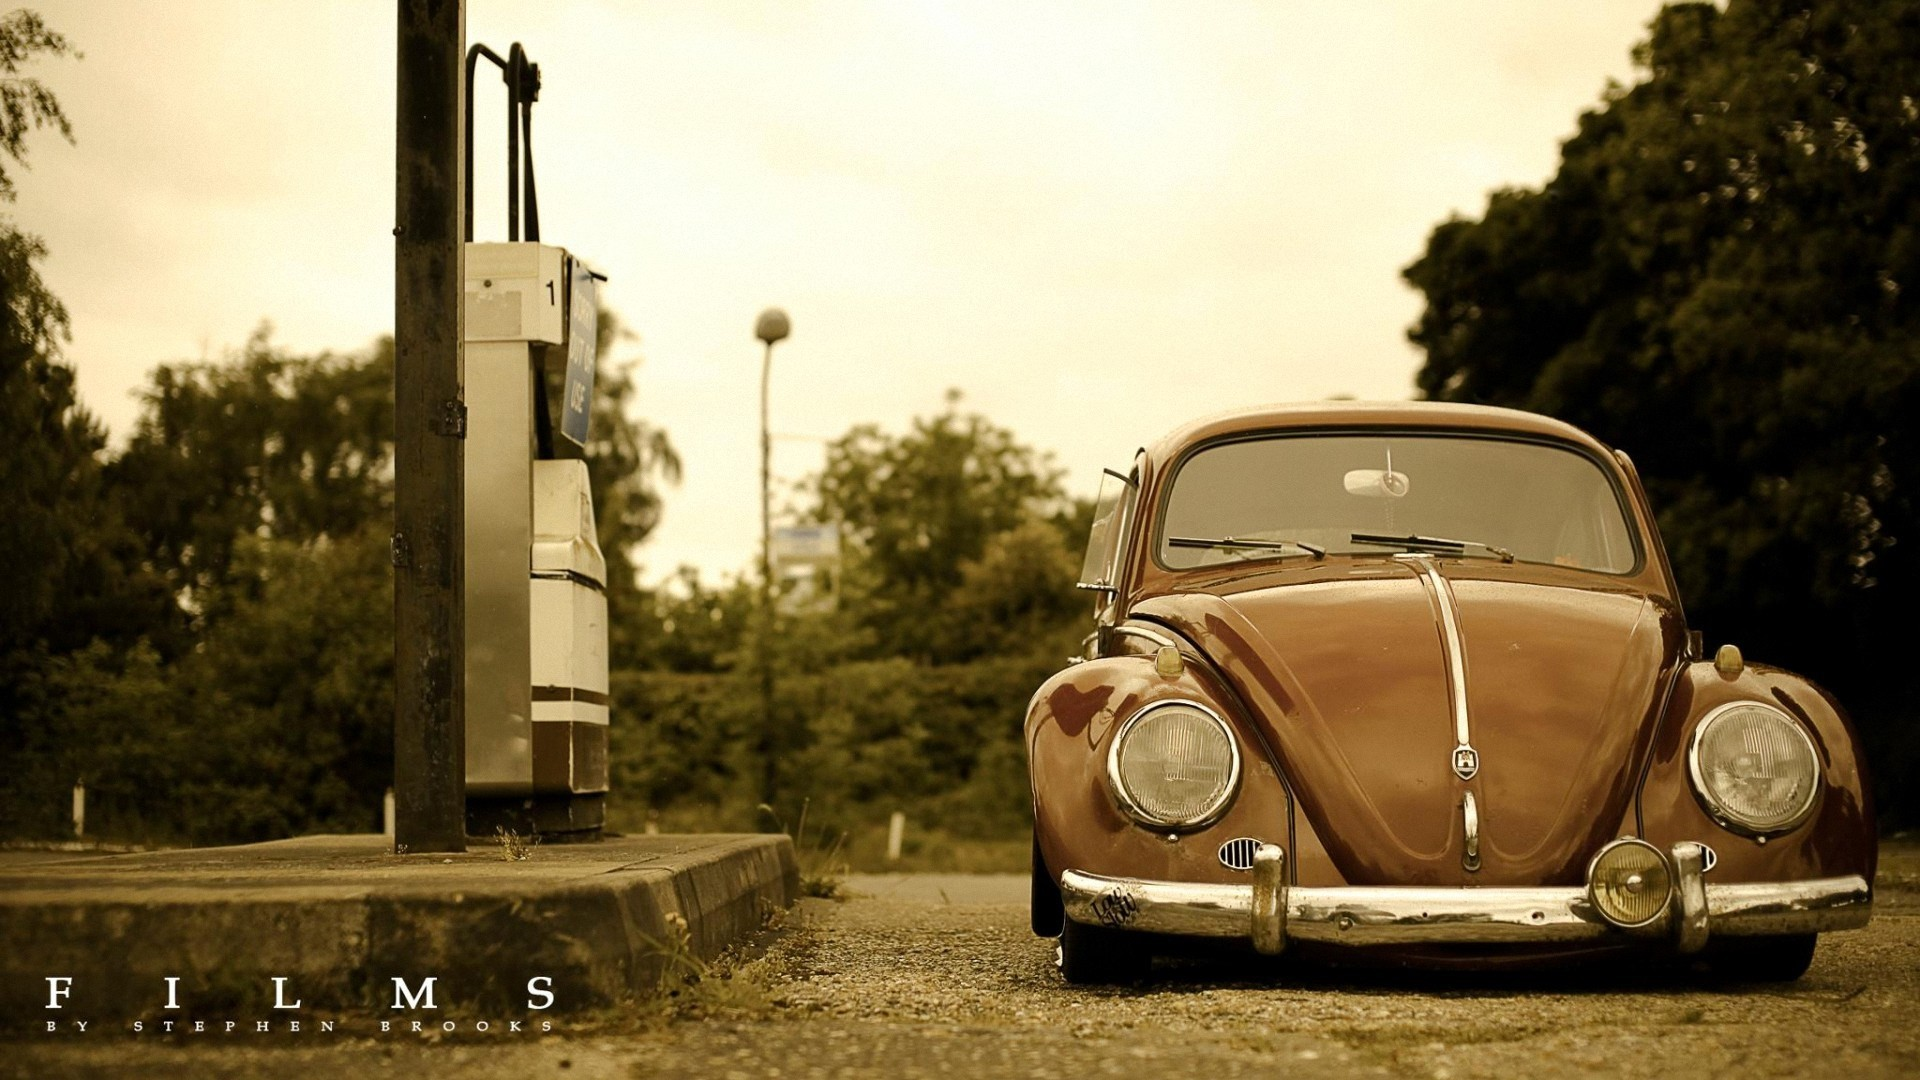 free screensaver wallpapers for volkswagen beetle – volkswagen beetle  category